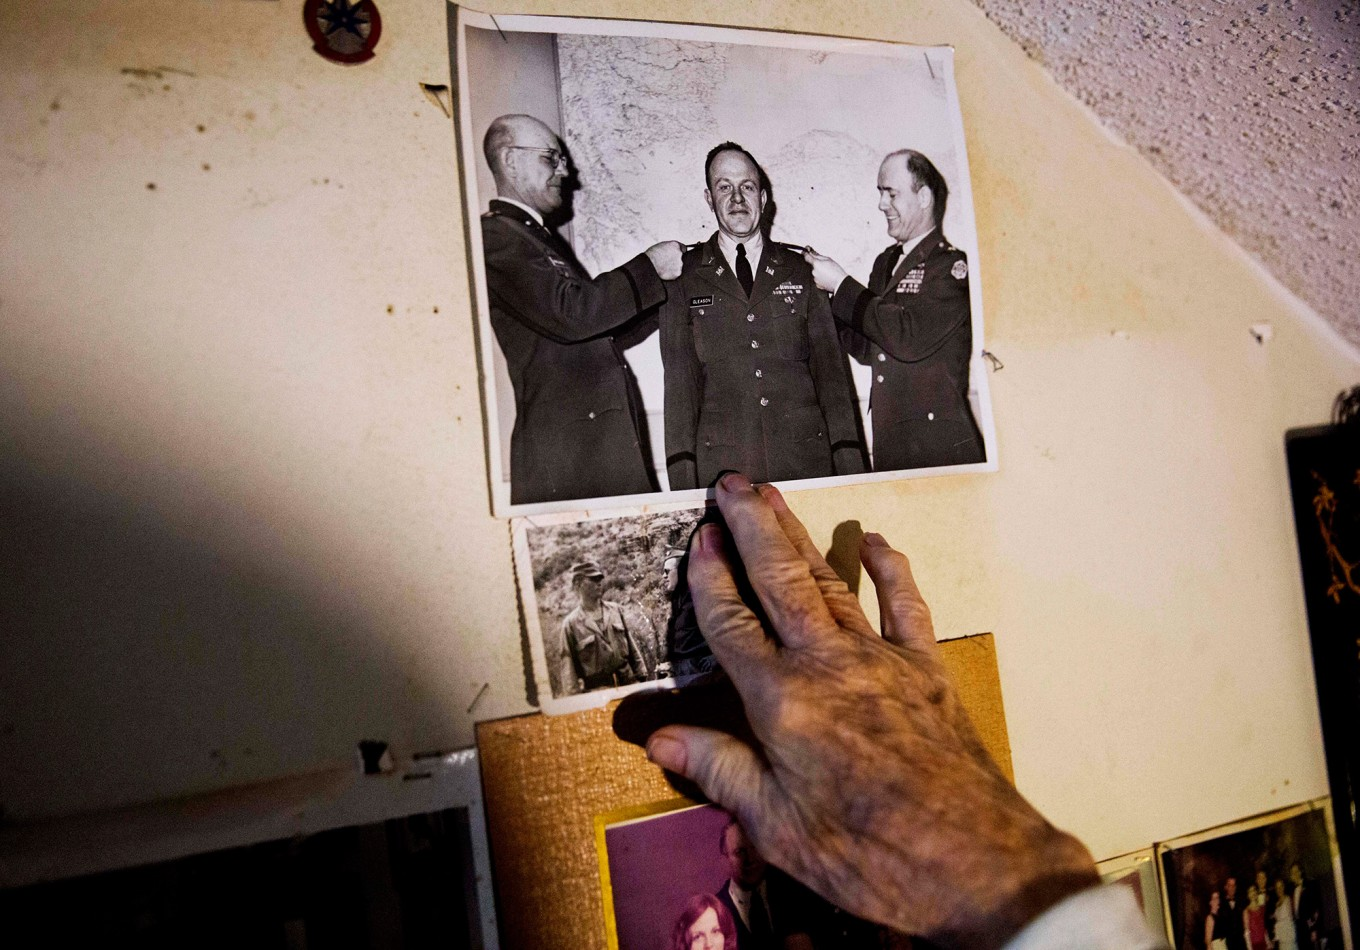 Memorabilia decorates a wall in the home of Frank Gleason, 96, a retired colonel with the Office of Strategic Services, in Atlanta, Wednesday, Sept. 28, 2016. Legislation to recognize the contributions of a group of World War II spies is hung up in Congress. Some 75 years ago, the OSS carried out missions behind enemy lines in Nazi Germany and the Pacific theatre. Gleason's group was tasked with halting the Japanese advance into China. Gleason and his comrades did this by detonating bridges, railroad tracks and anything else. 'We just blew stuff up left and right,' said Gleason. AP Photo/David Goldman